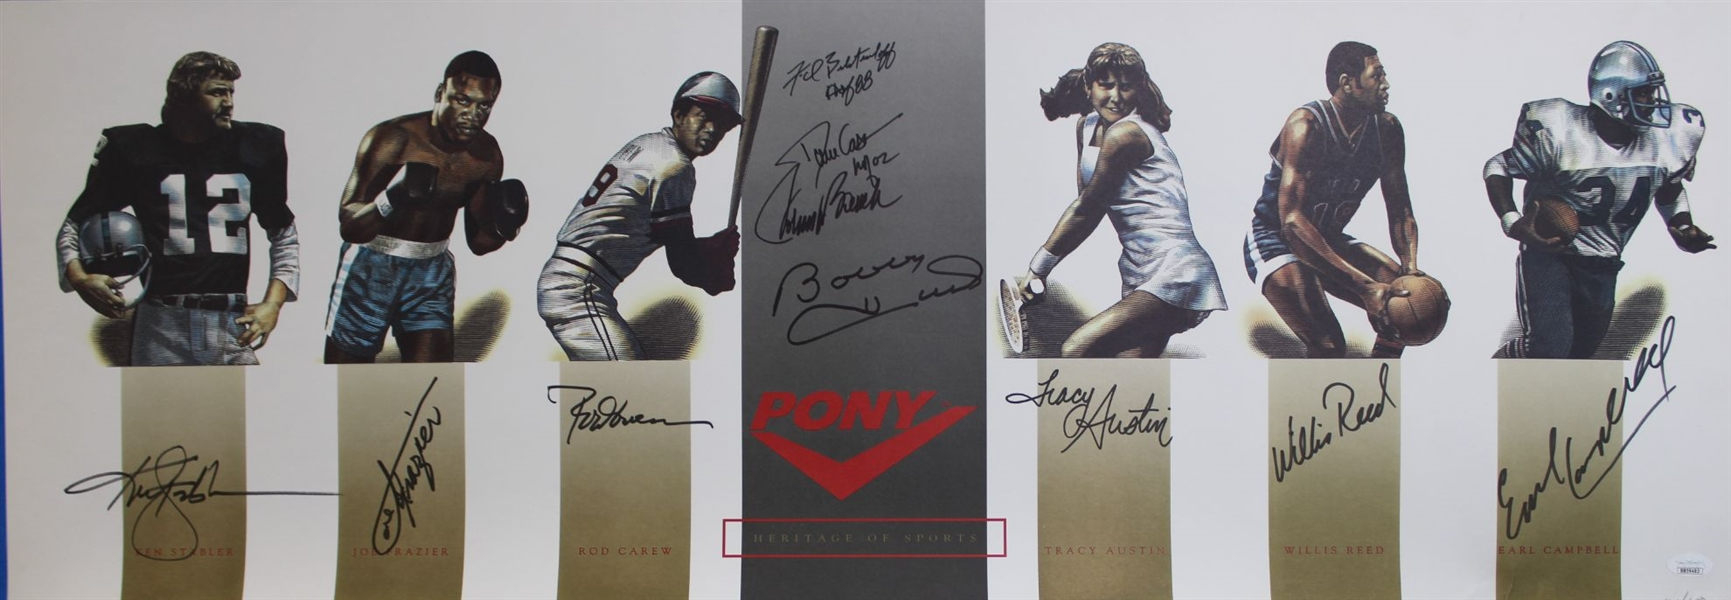 Ken Stabler, Earl Campbell, Joe Frazier, Willis Reed, Rod Carew, Johnny Bench & Others (10 Total) Signed Lmt Ed. Heritage of Sports 13x37 Lithograph (JSA LOA)